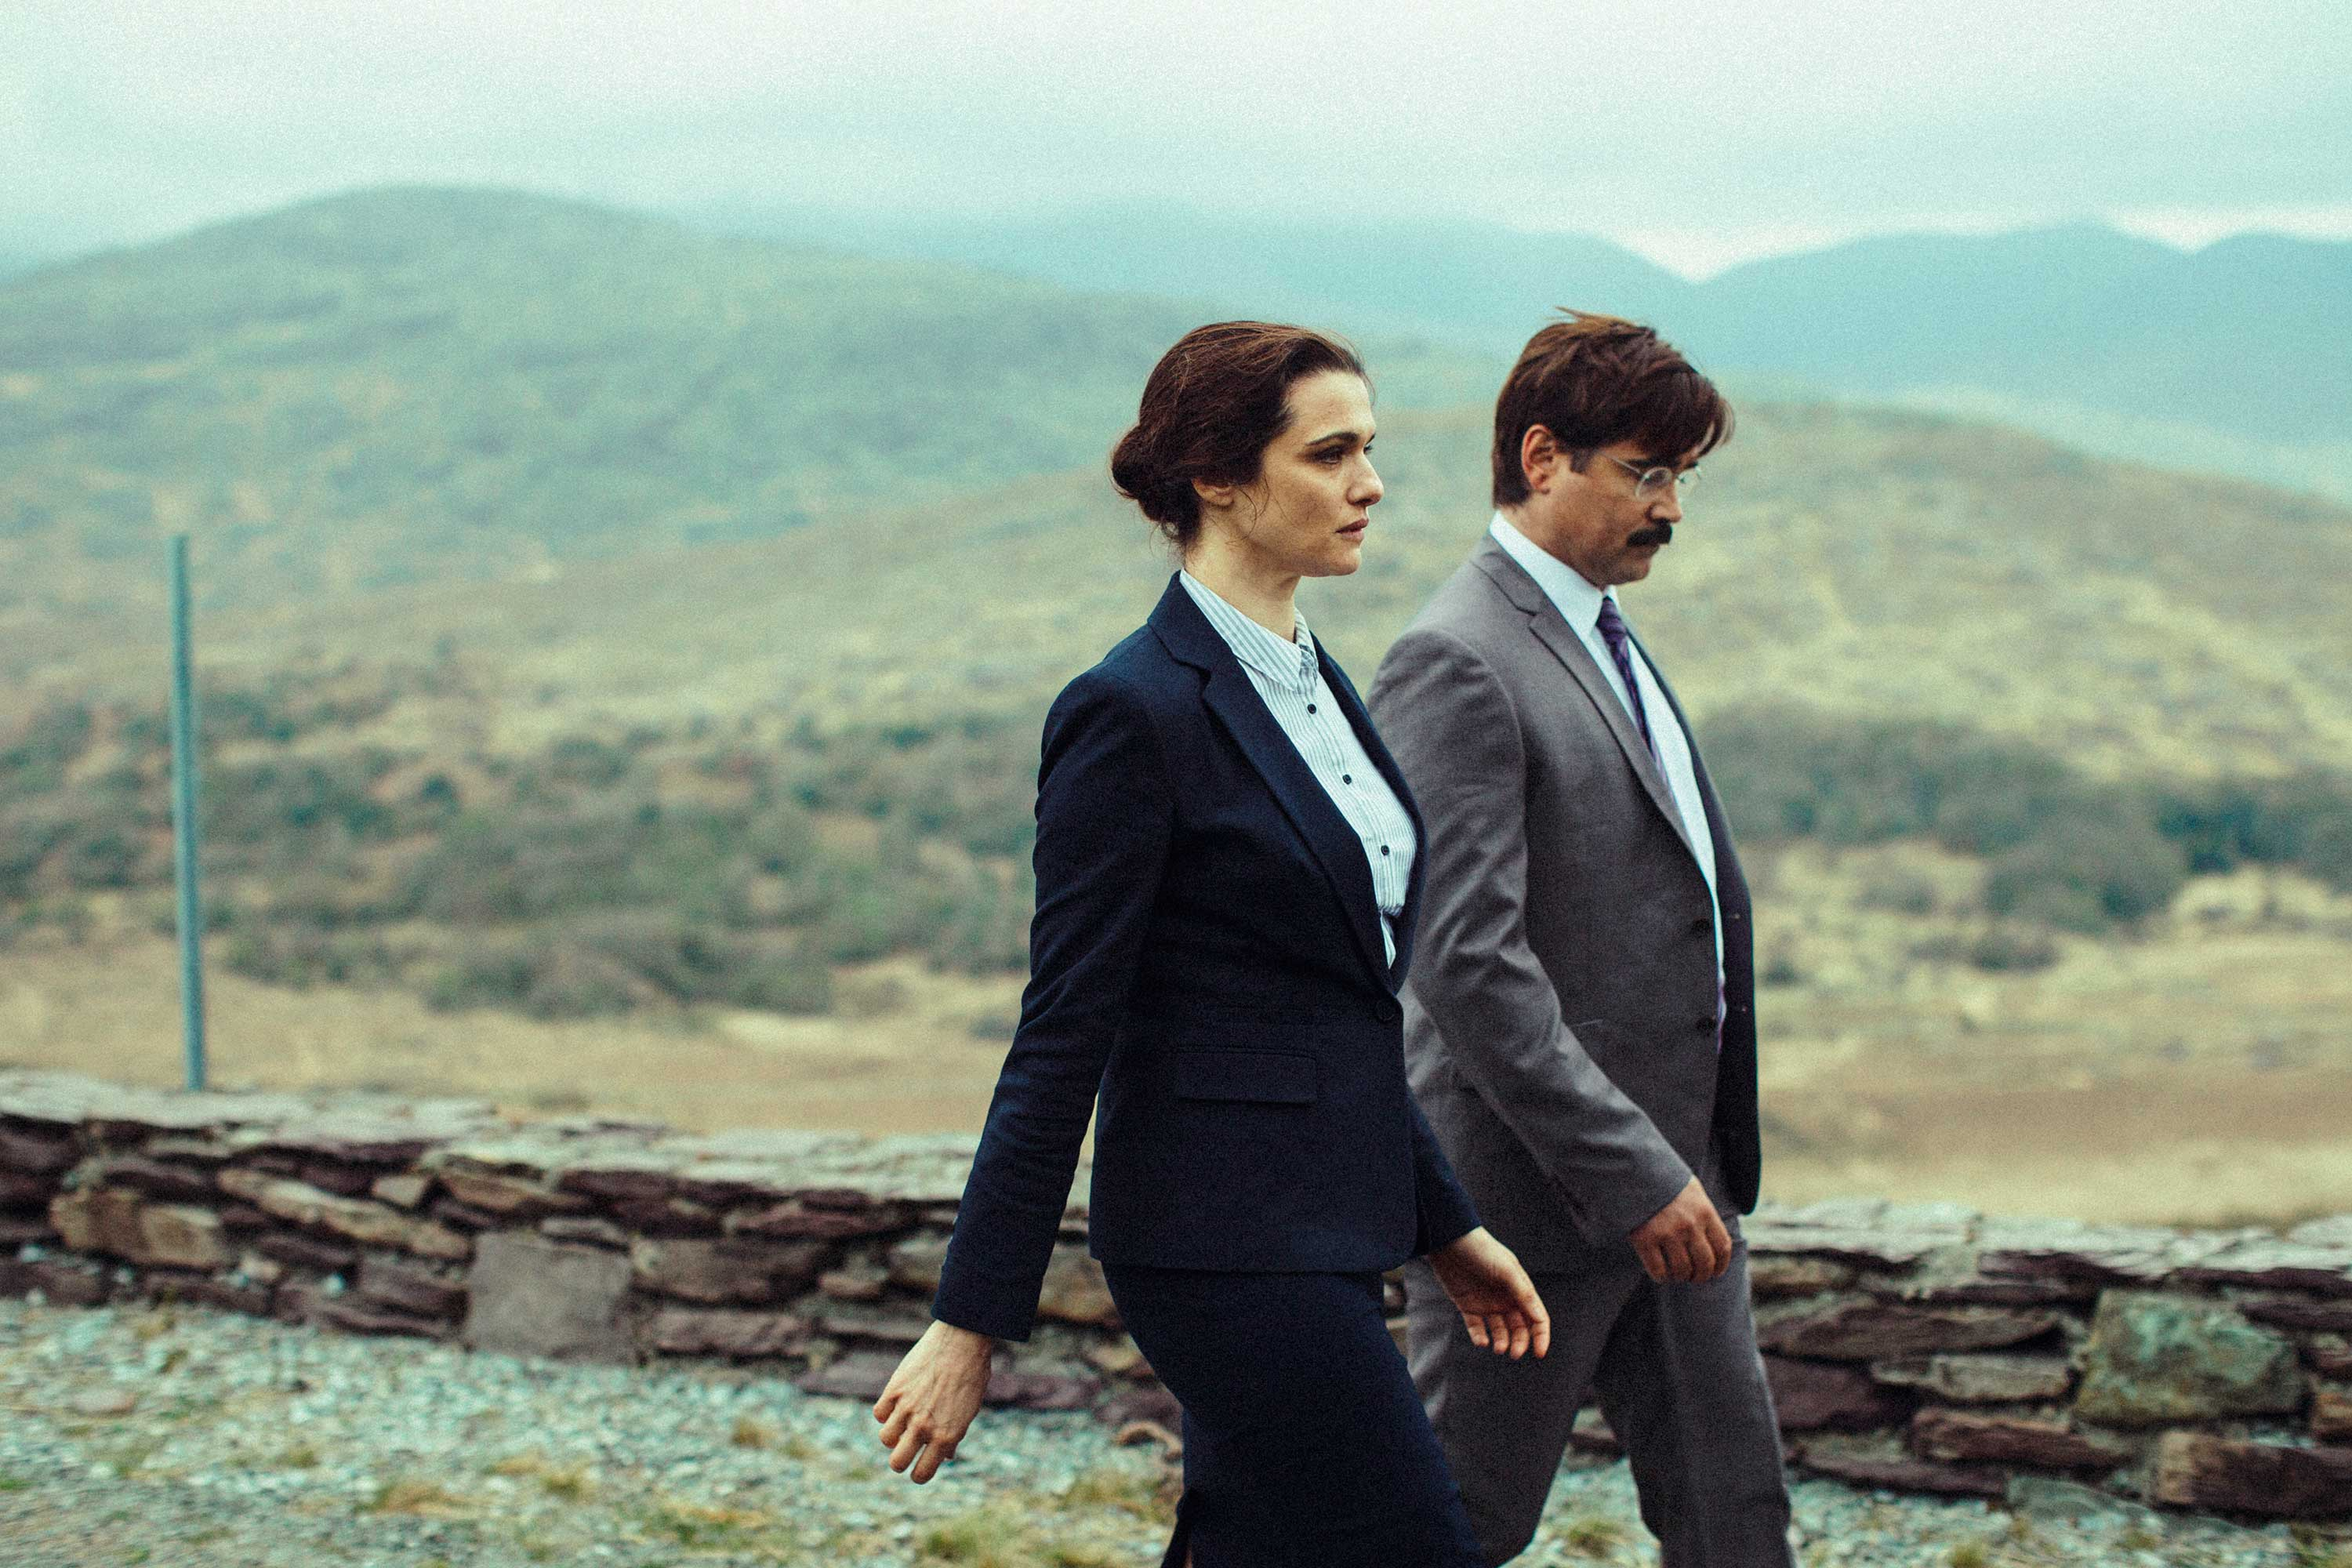 When love is the law of the land, singletons revolt in The Lobster